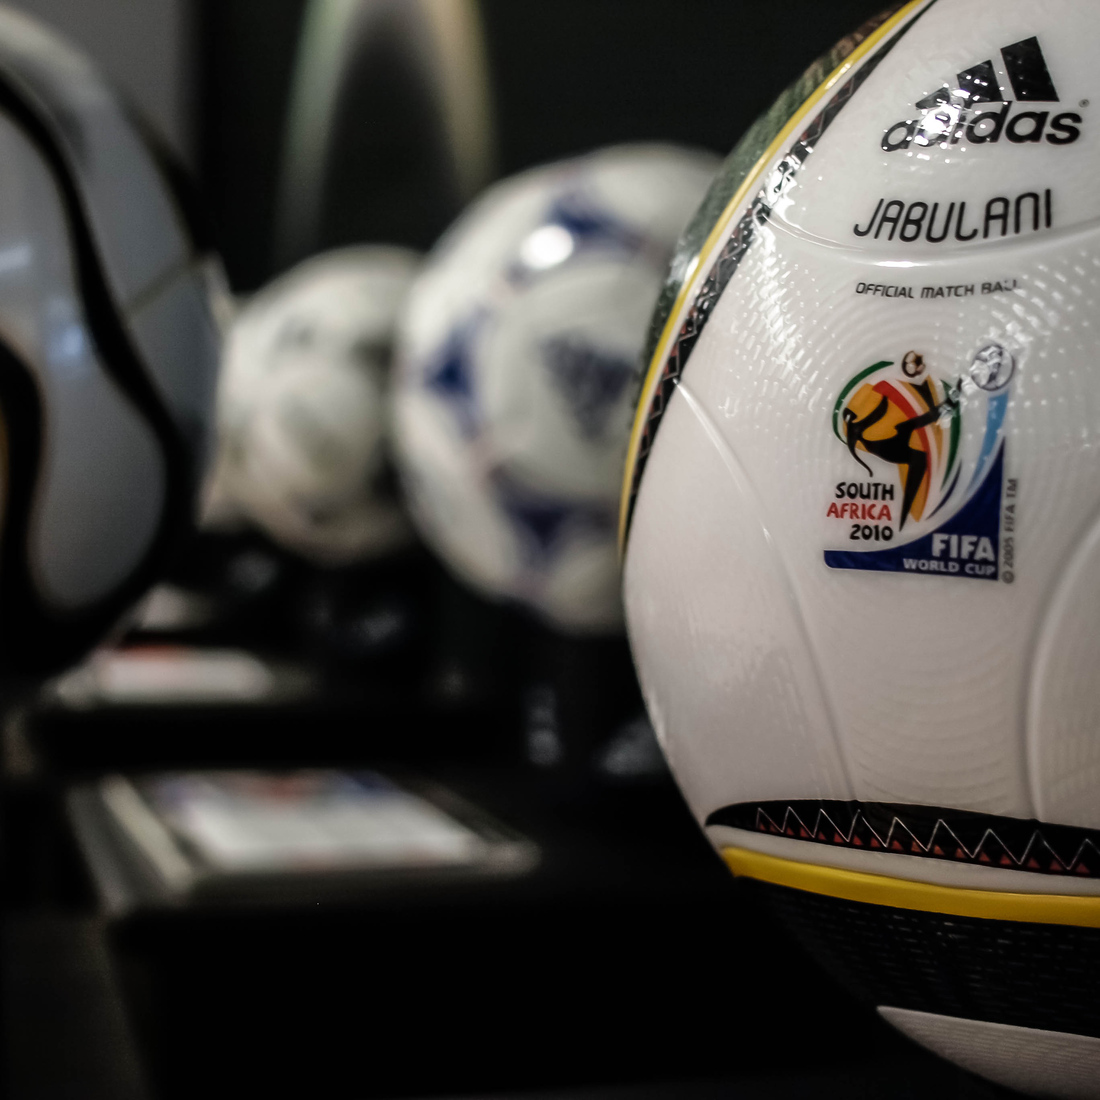 We go all in with adidas to see and test out their World Cup